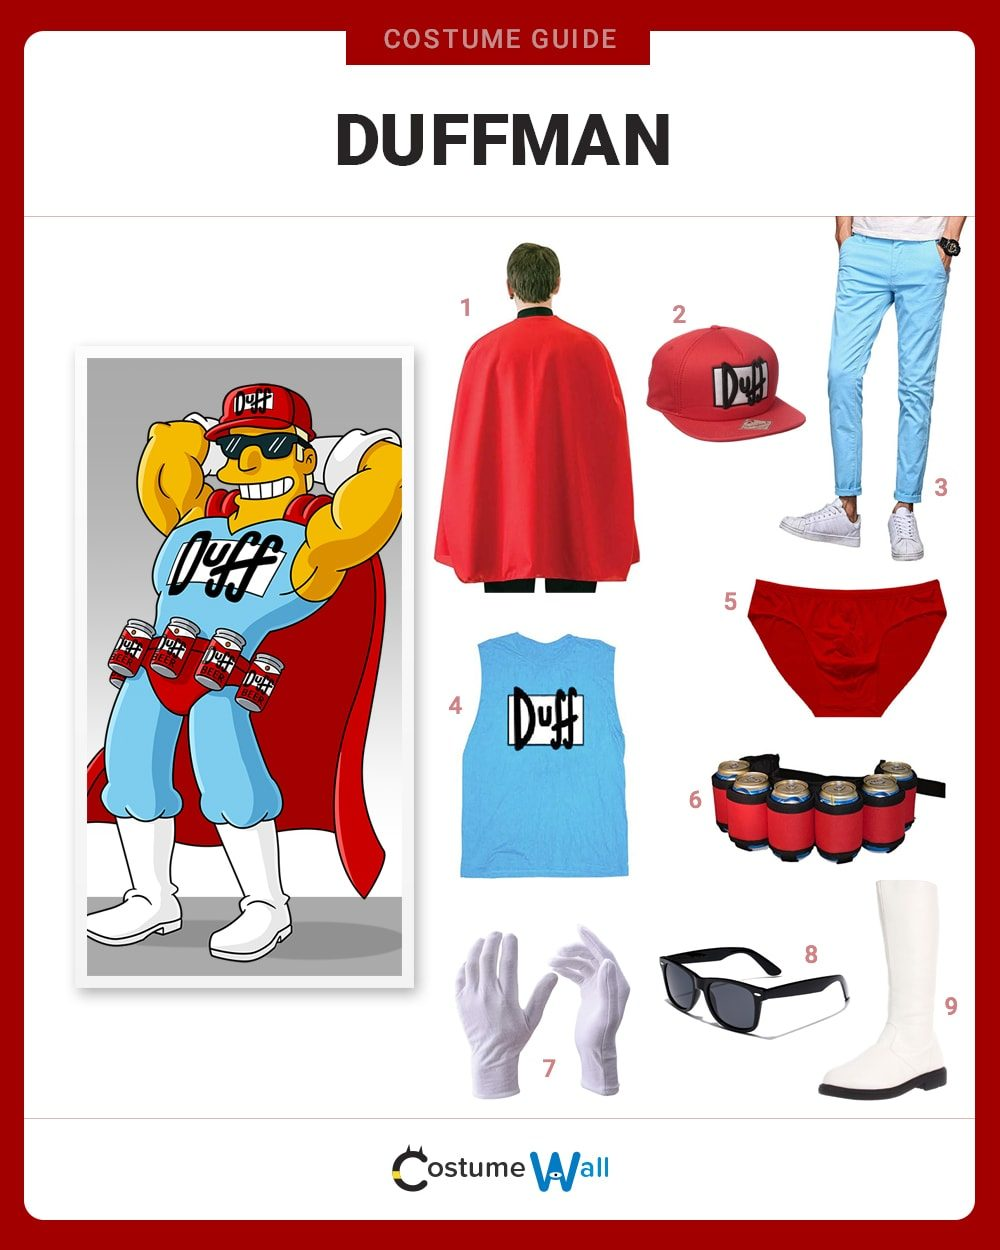 Duffman Costume Guide